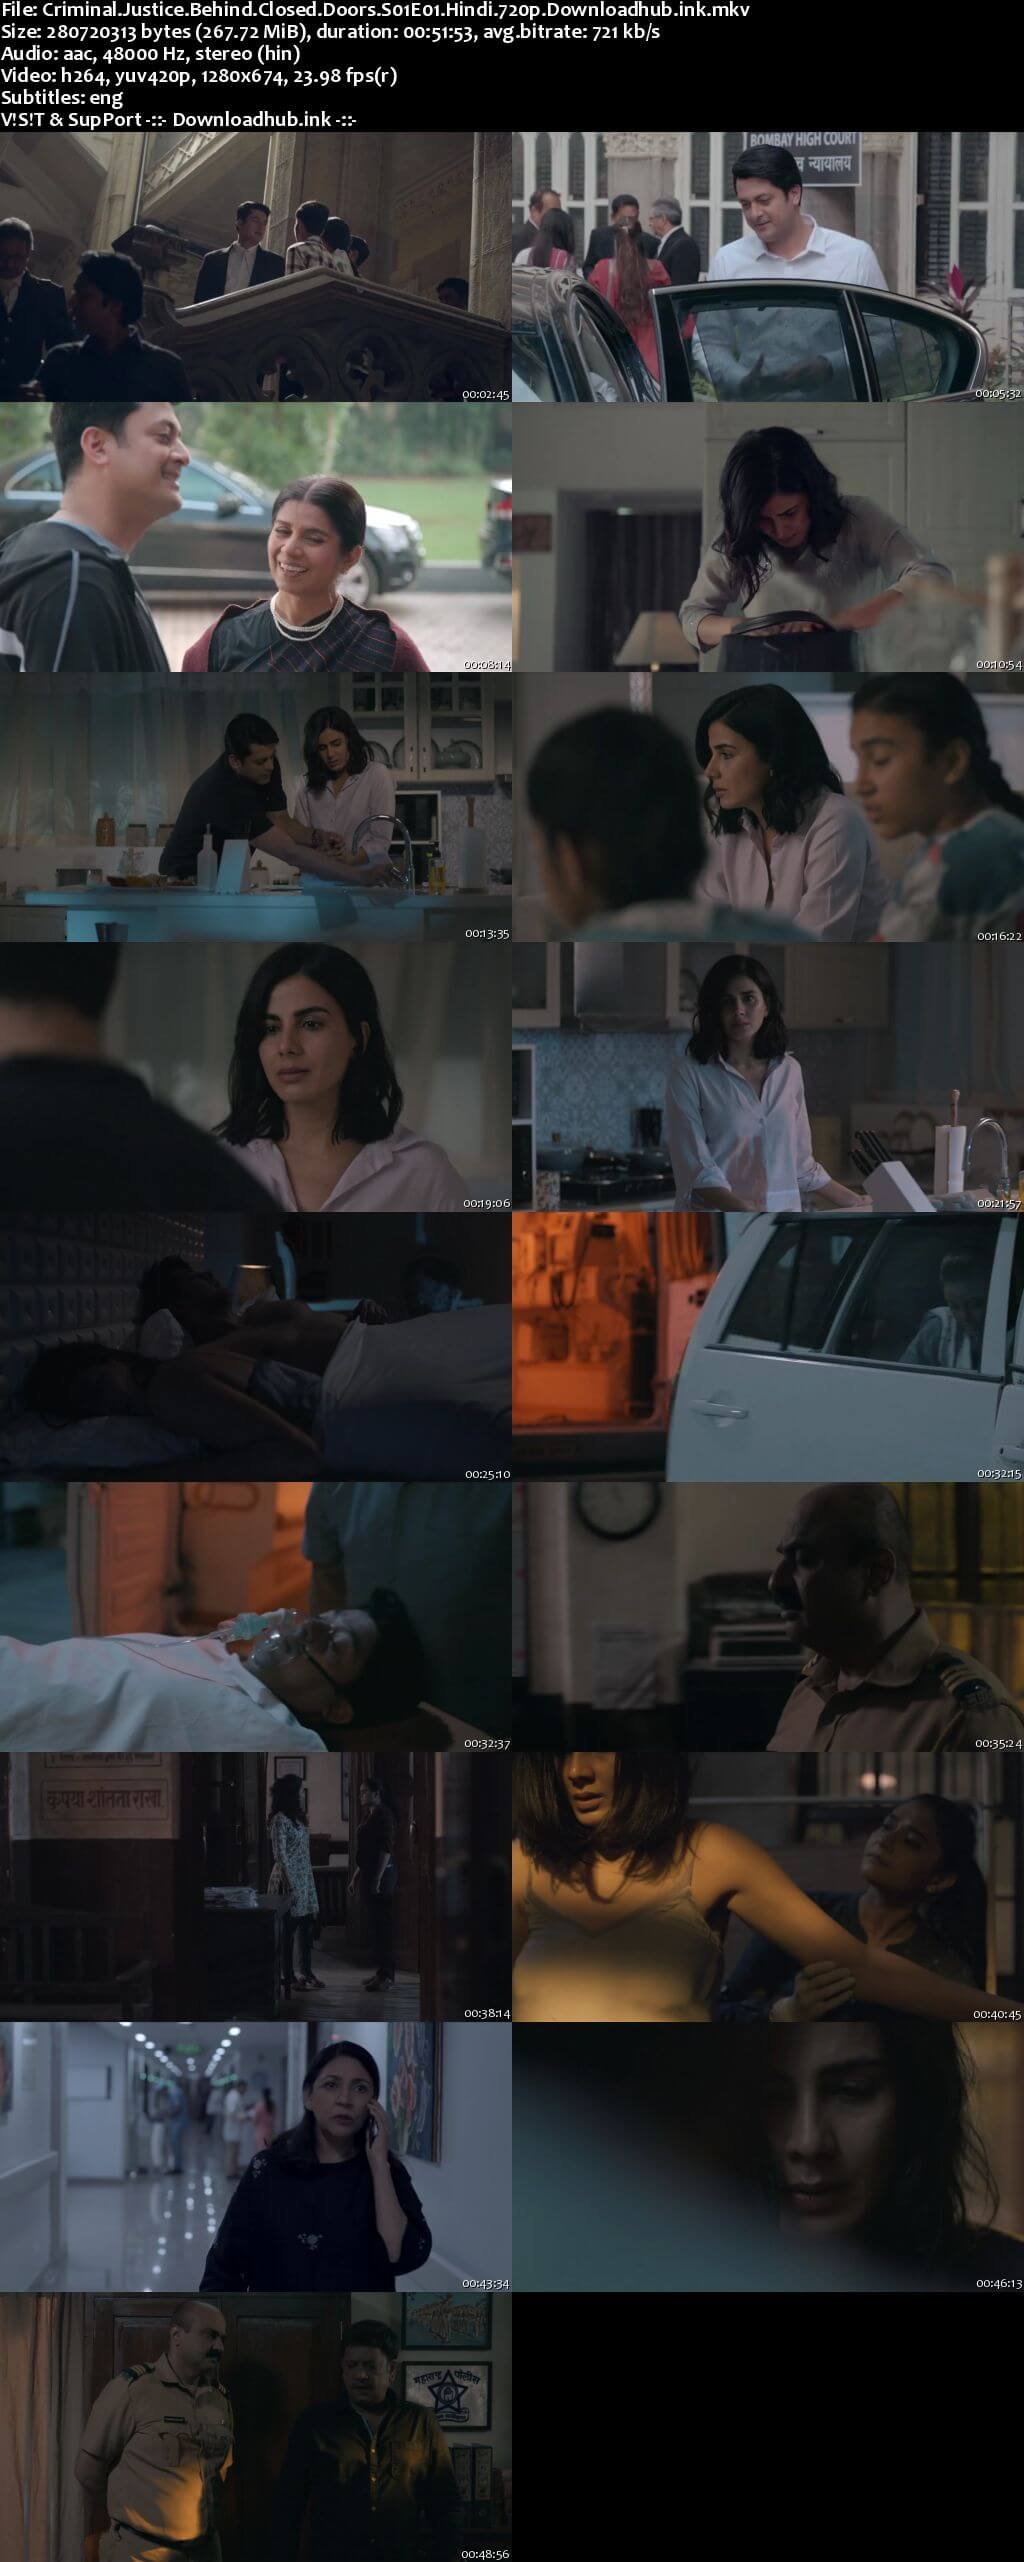 Criminal Justice Behind Closed Doors 2020 Hindi Season 01 Complete 720p HDRip ESubs